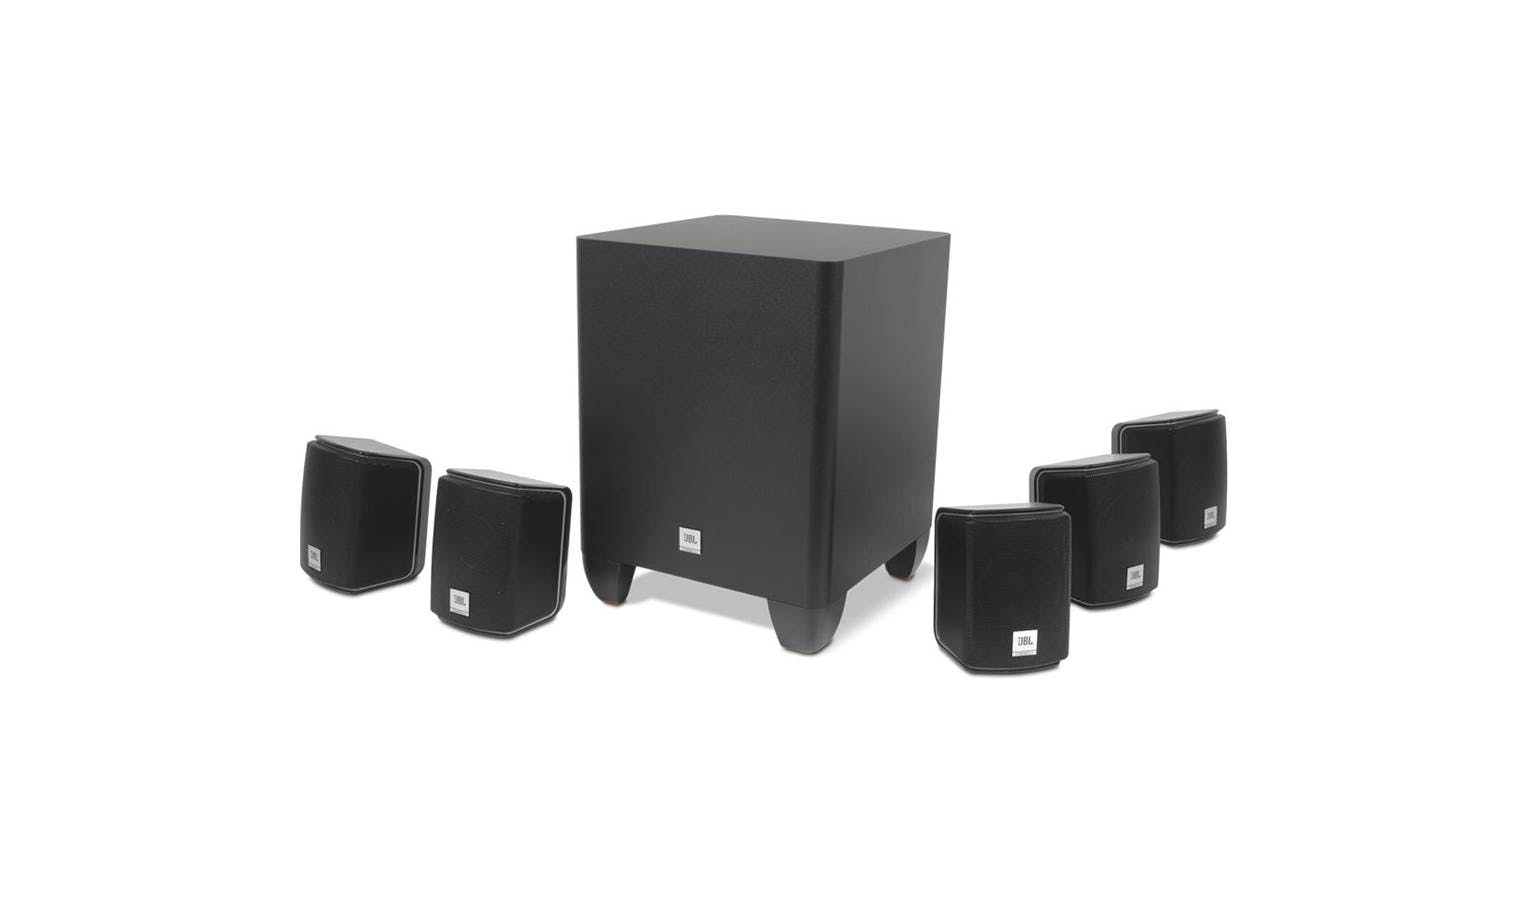 JBL Cinema 510 5 1 Channel Home Theater System